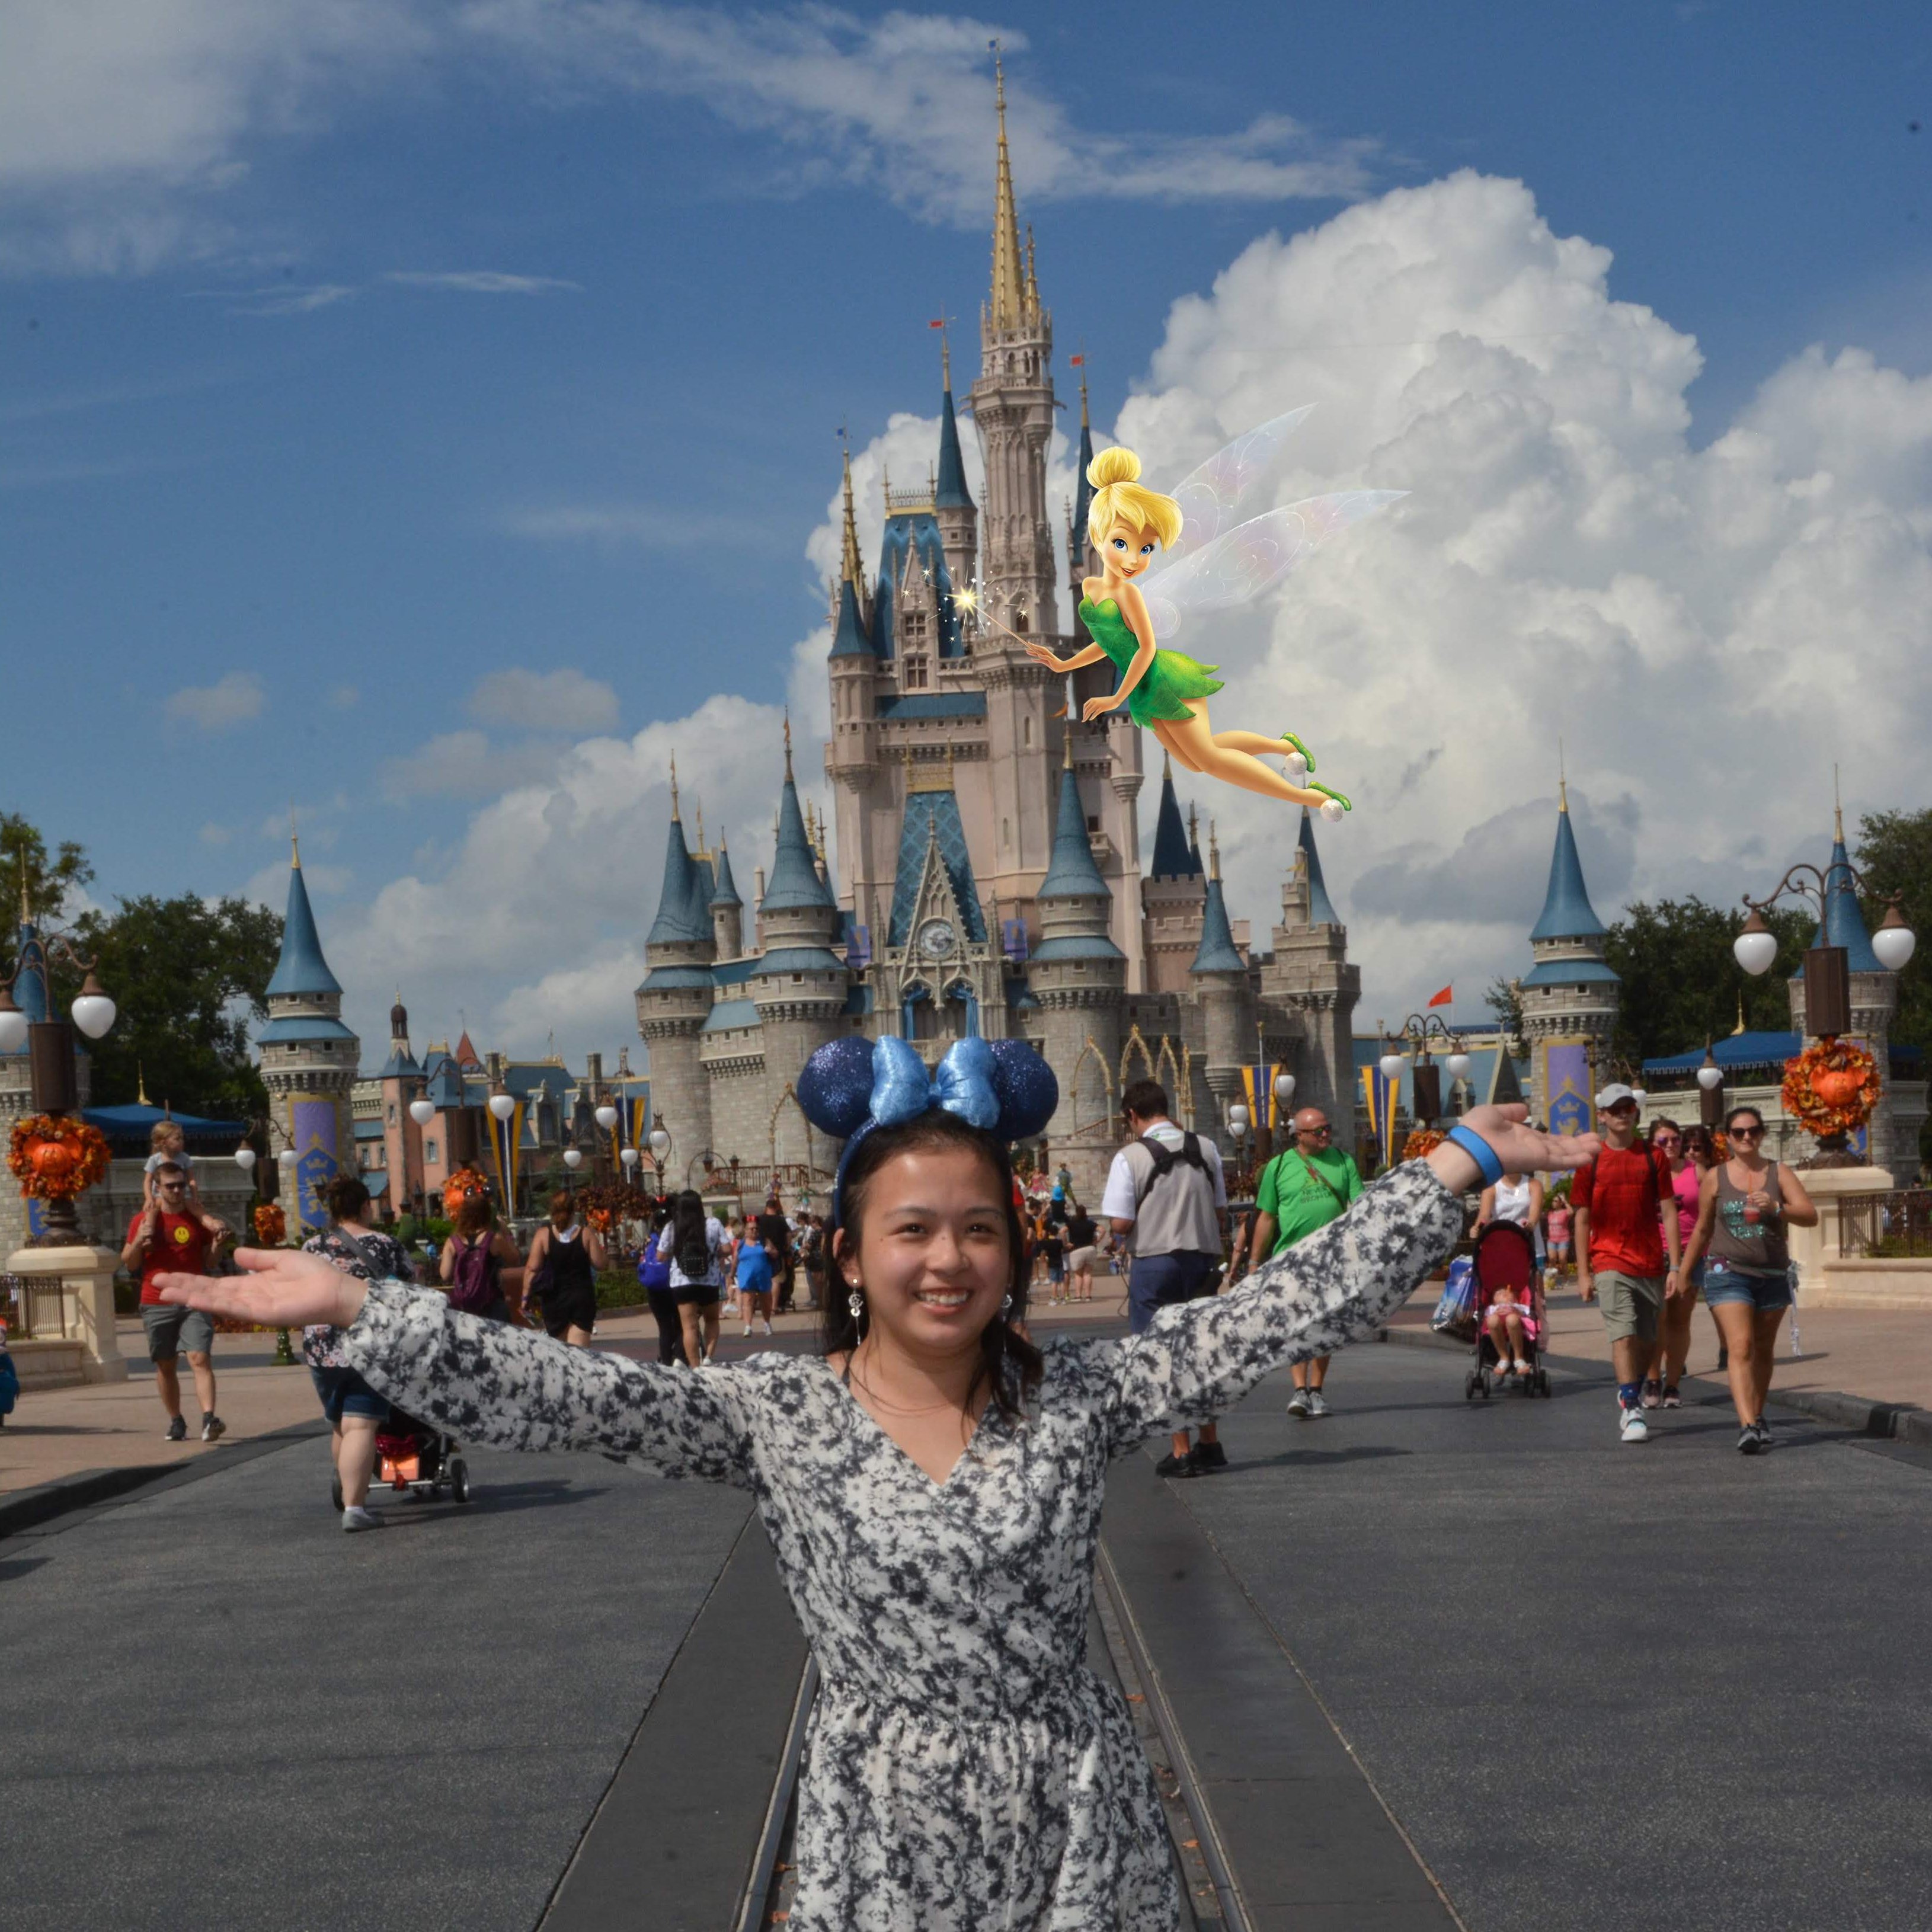 A photo of me and my mouse ears at Magic Kingdom. Tinker Bell is flying around spreading all the magical pixie dust.